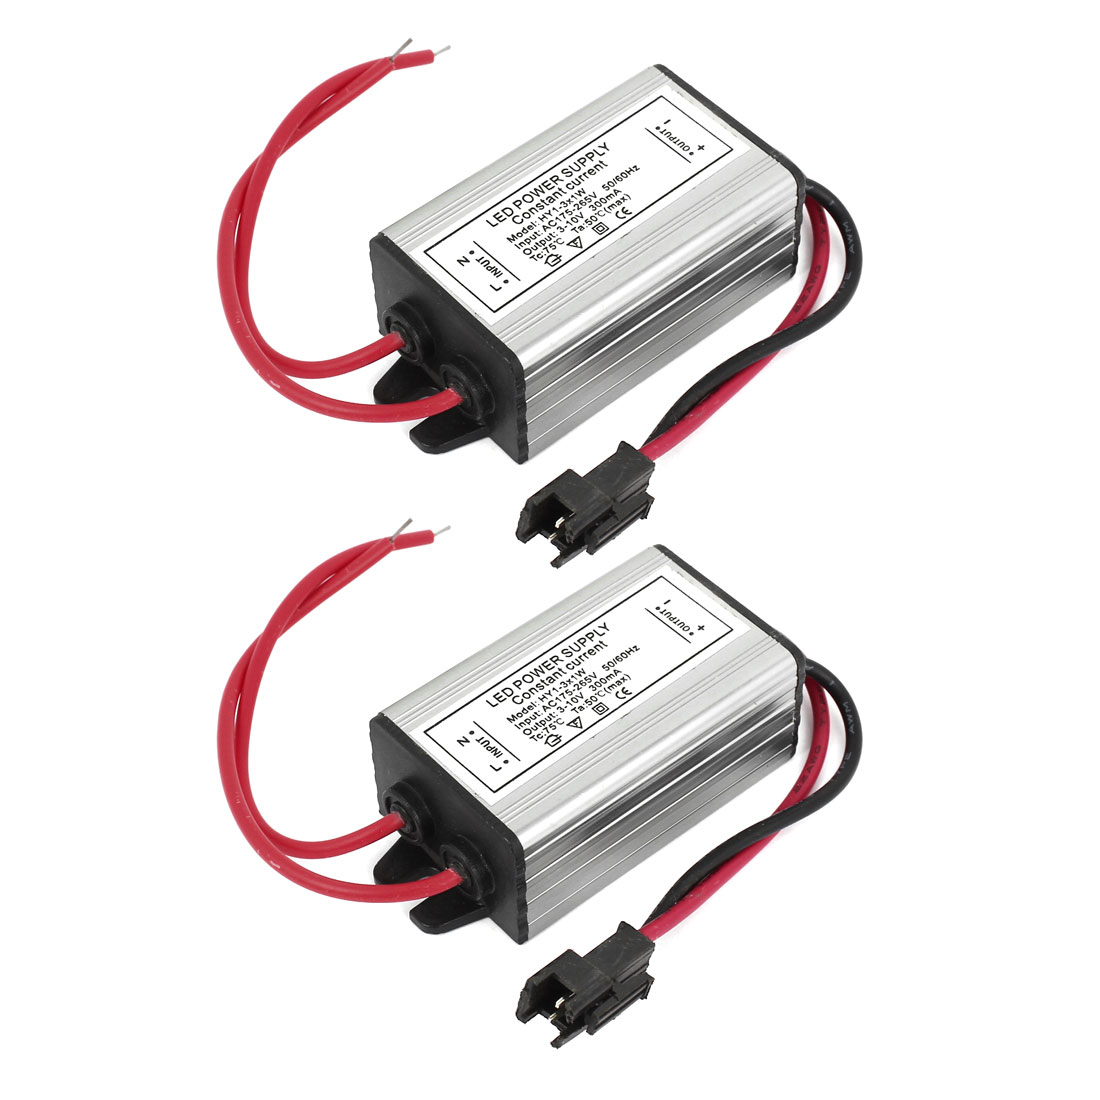 2 Pcs Waterproof LED Driver Power Supply Adapter AC 175-265V to DC 3-10V 300mA 1-3x1W